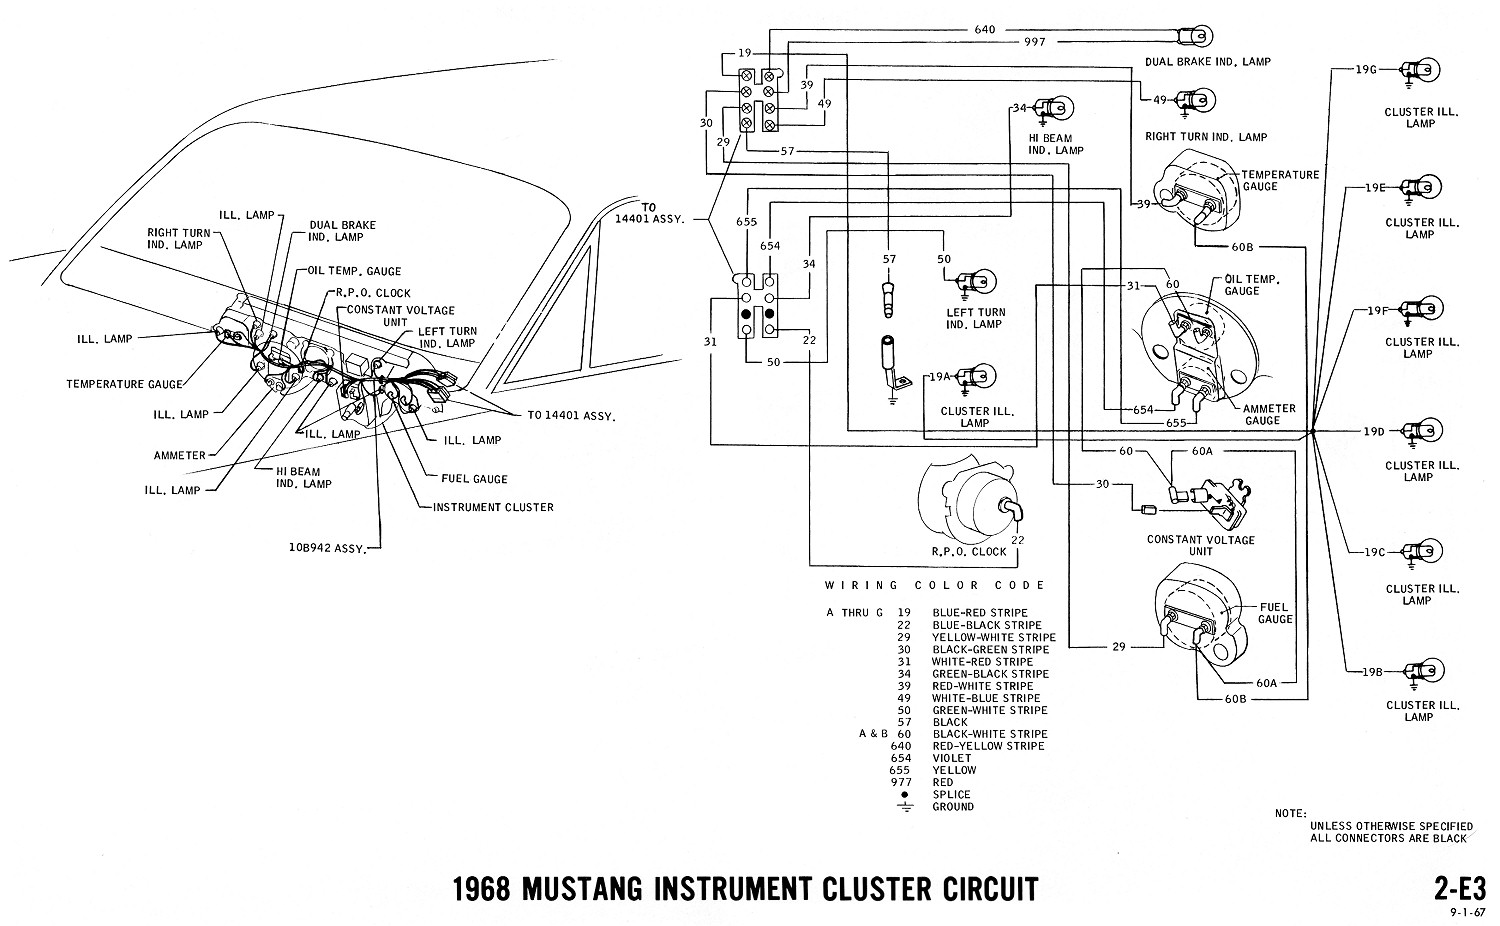 E3 1968 mustang wiring diagrams evolving software 1968 camaro gauge cluster wiring diagram at gsmx.co